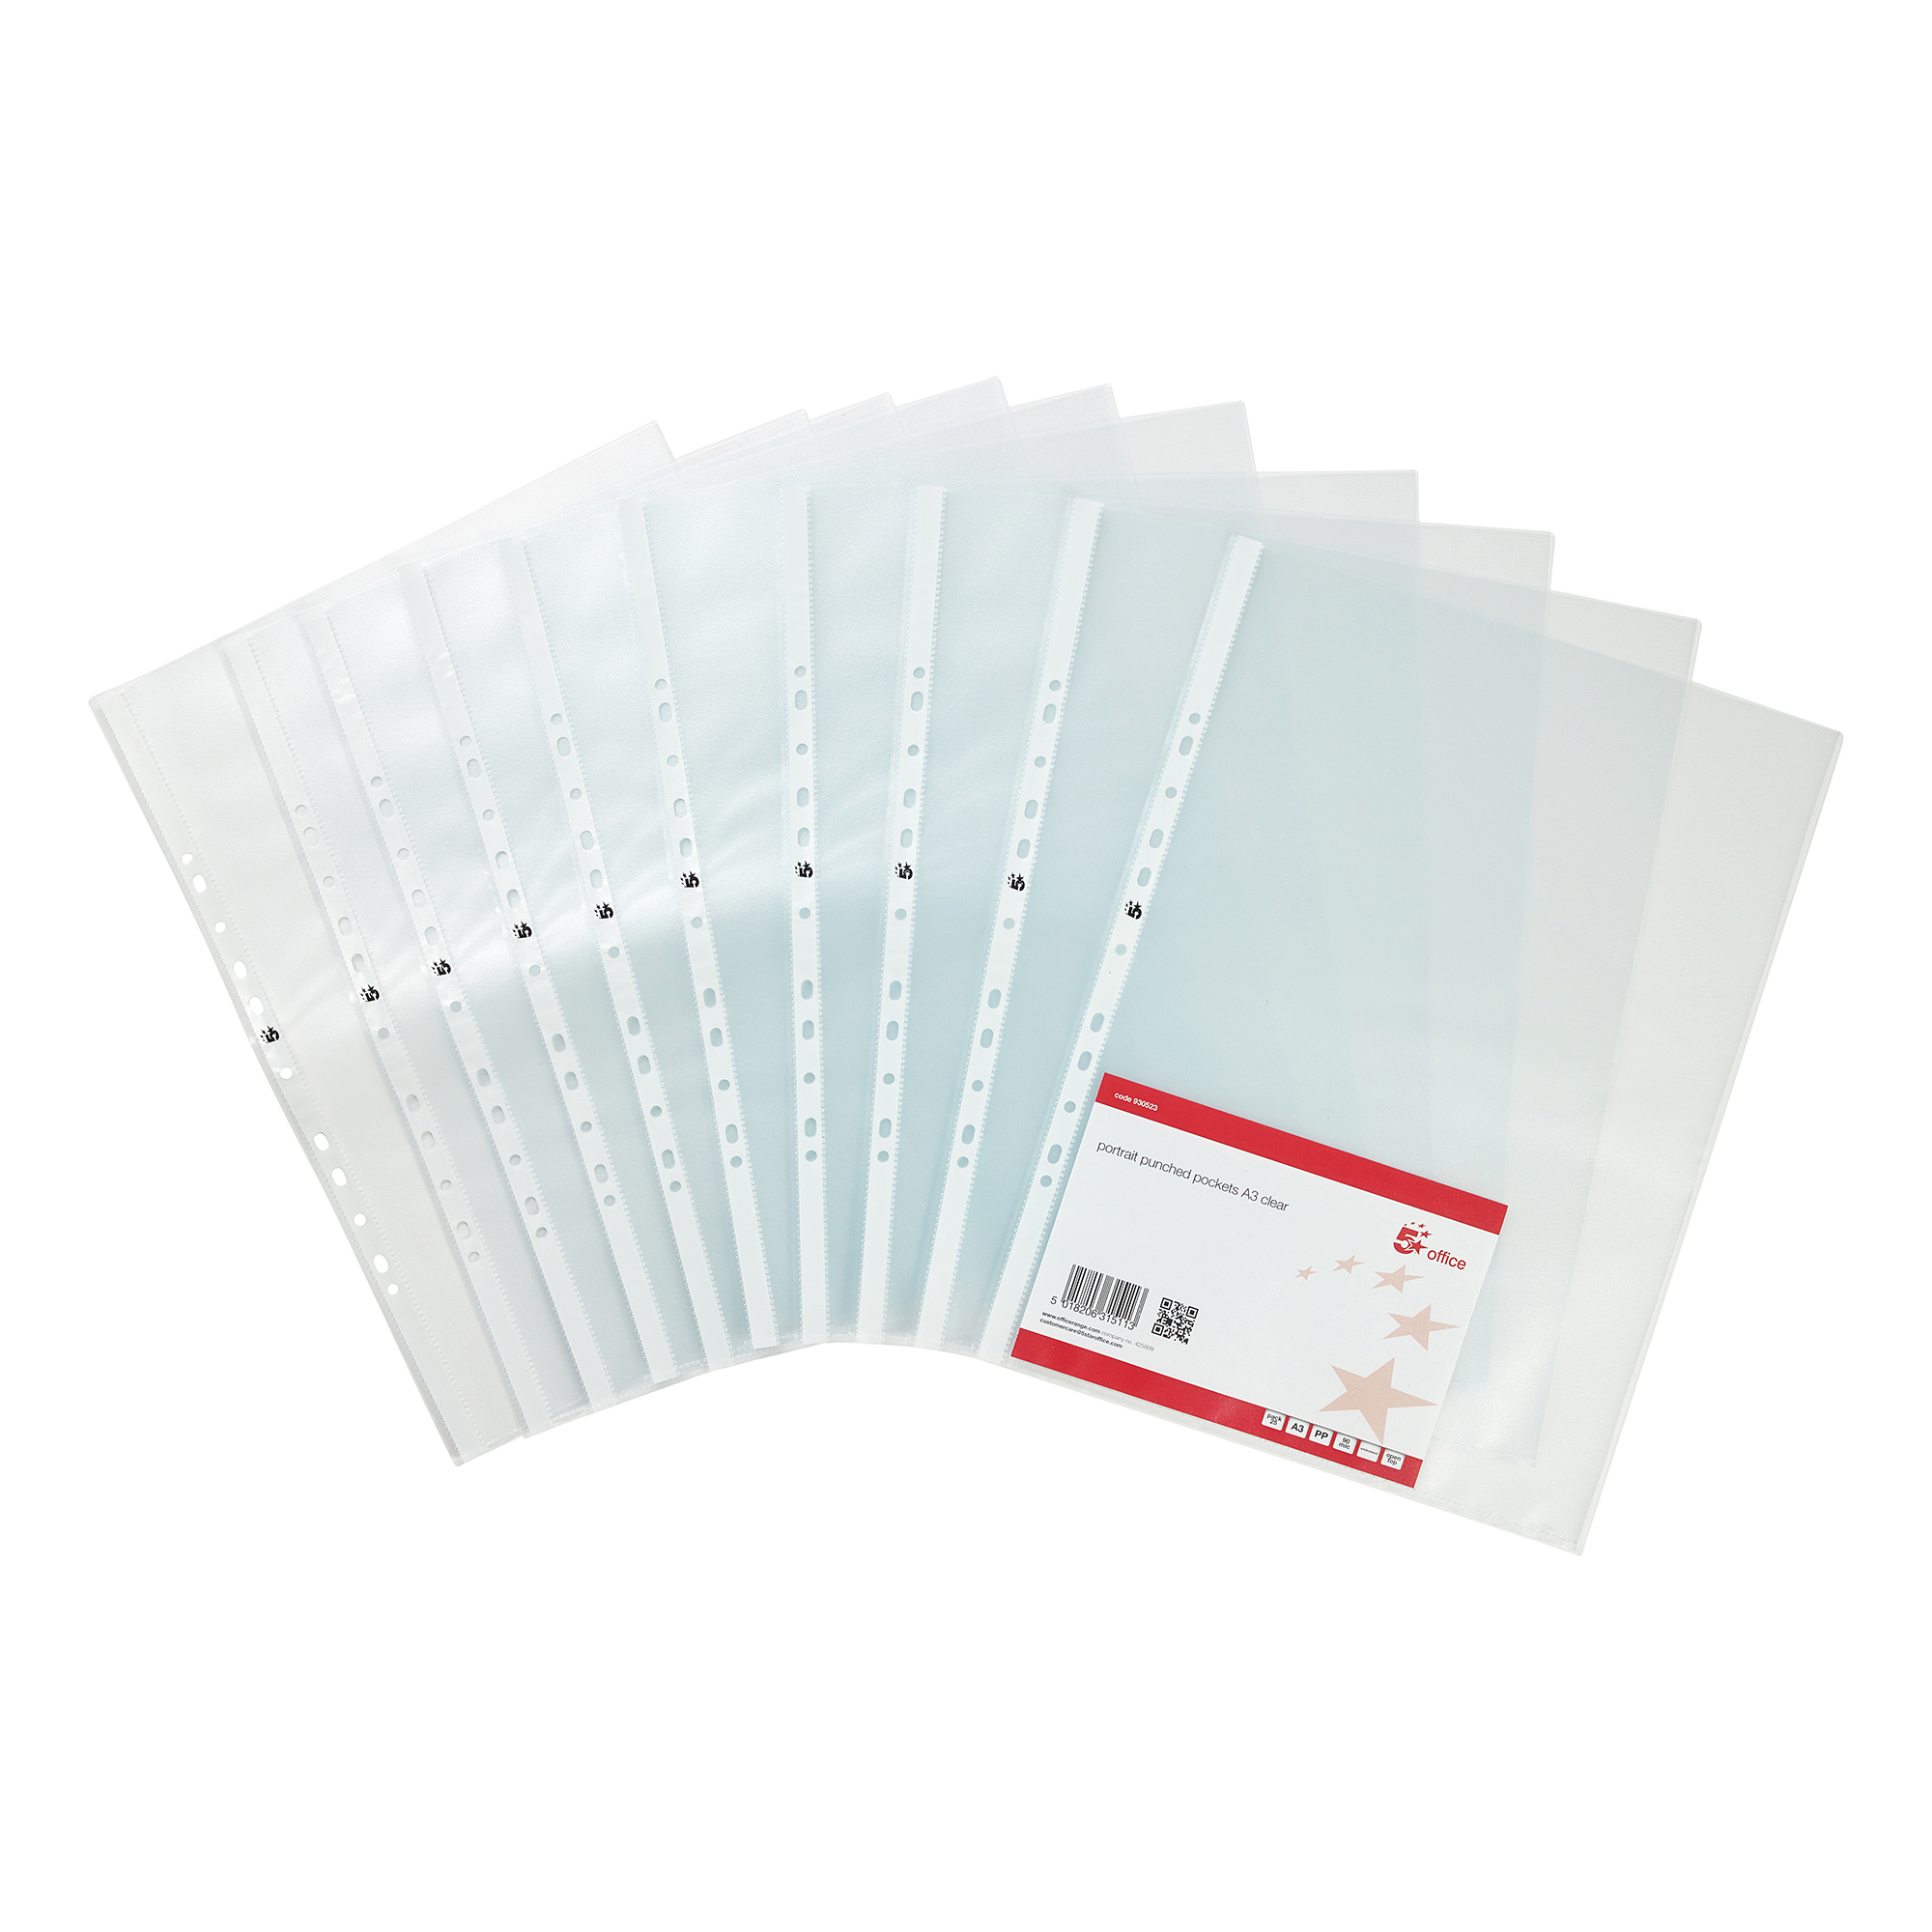 Plastic Pockets 5 Star Office Punched Pocket Embossed Polypropylene Top-opening Portrait 90 Micron A3 Clear Pack 25